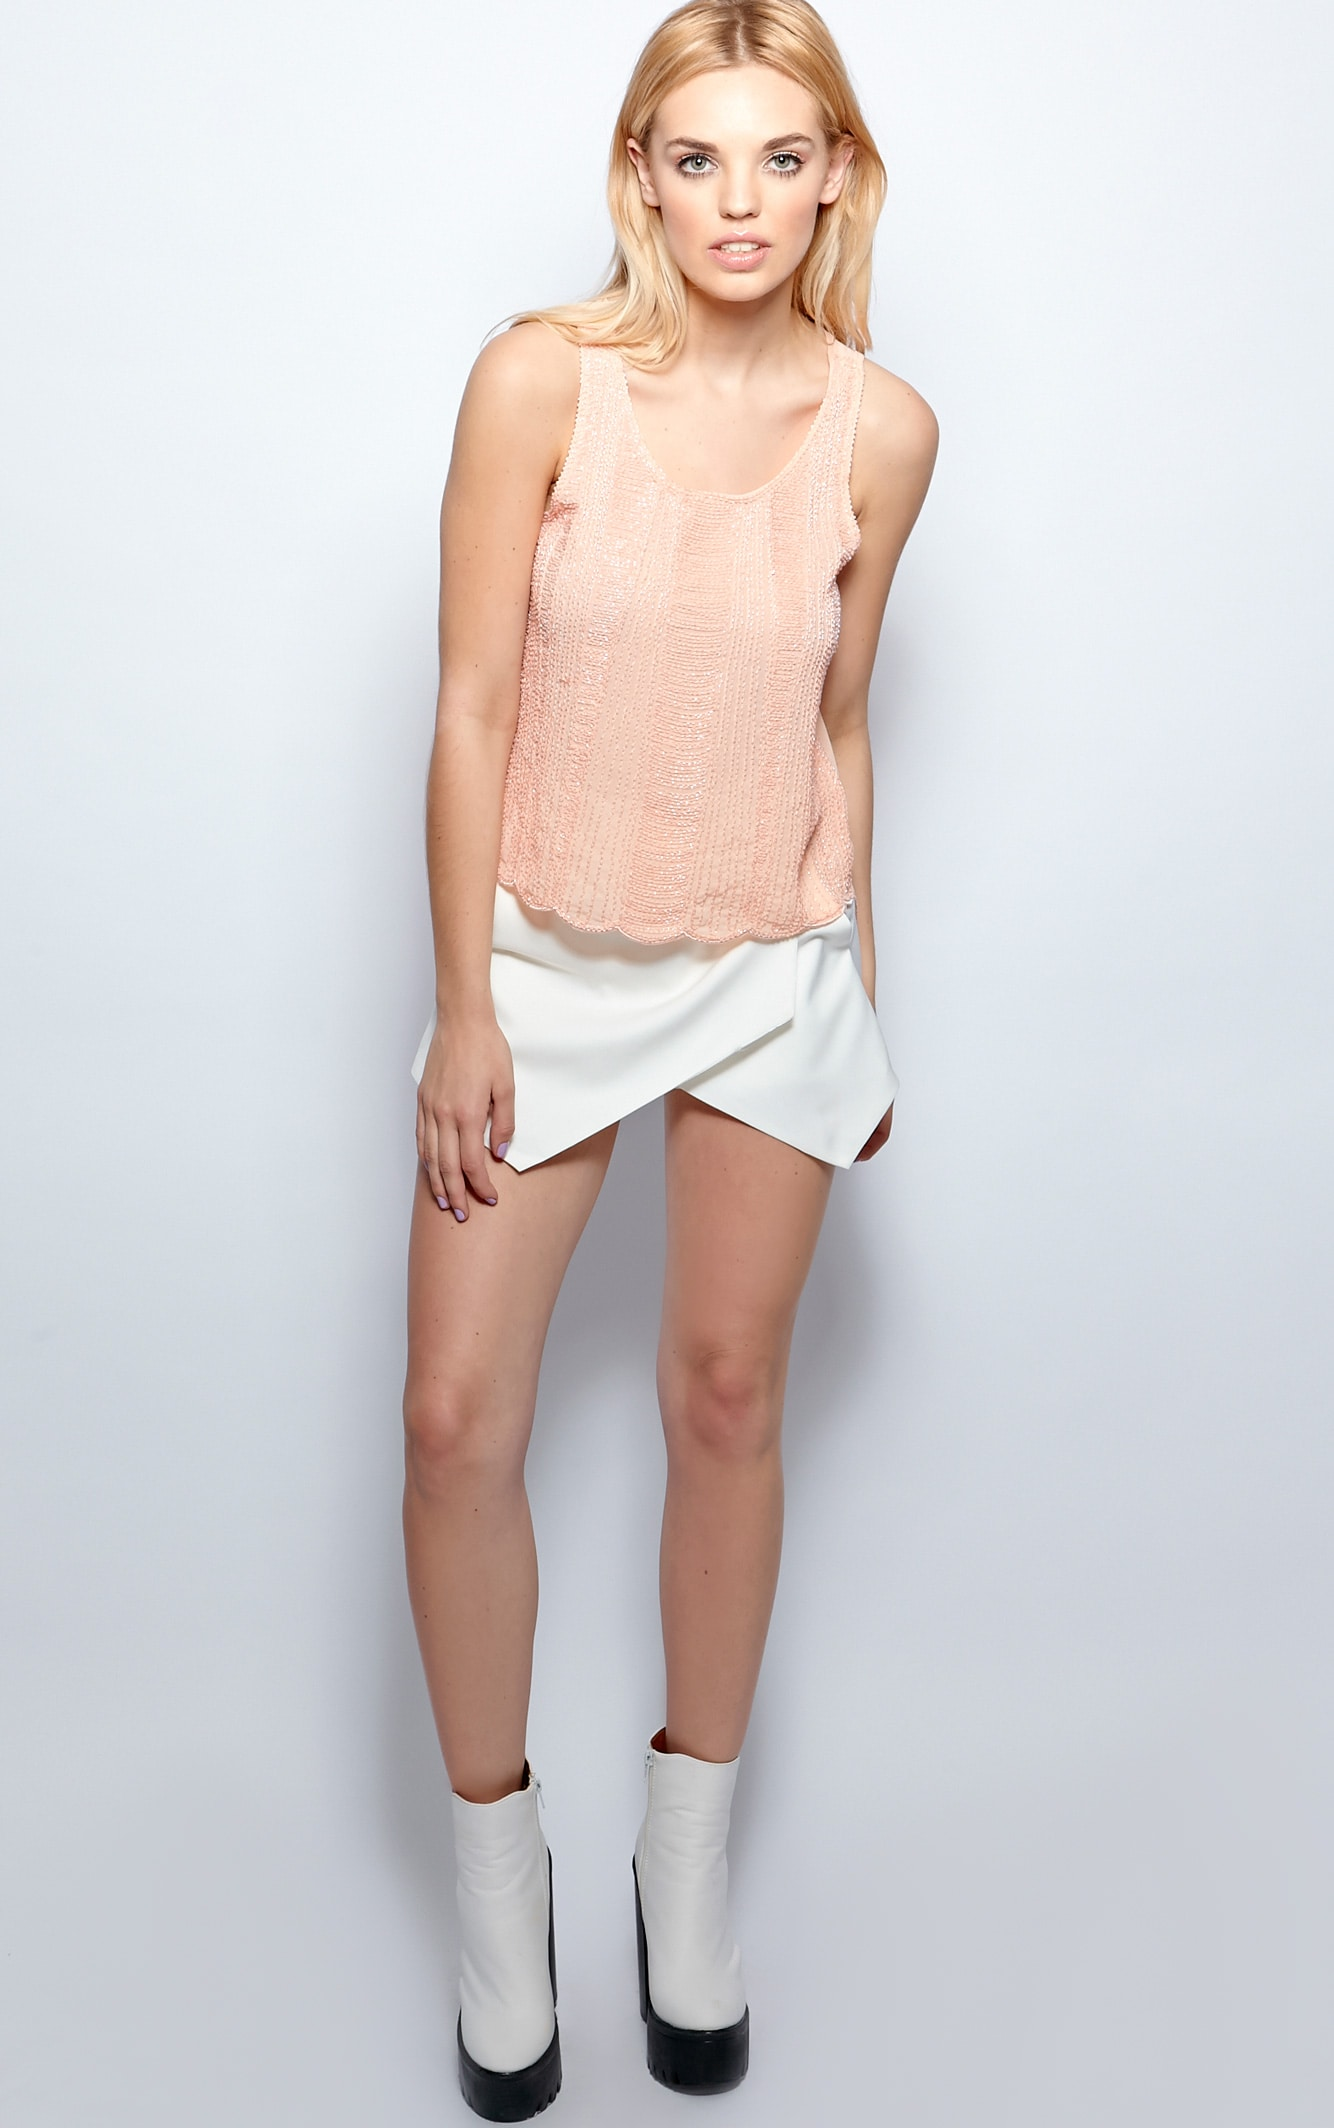 Raine Peach Embellished Cami  3